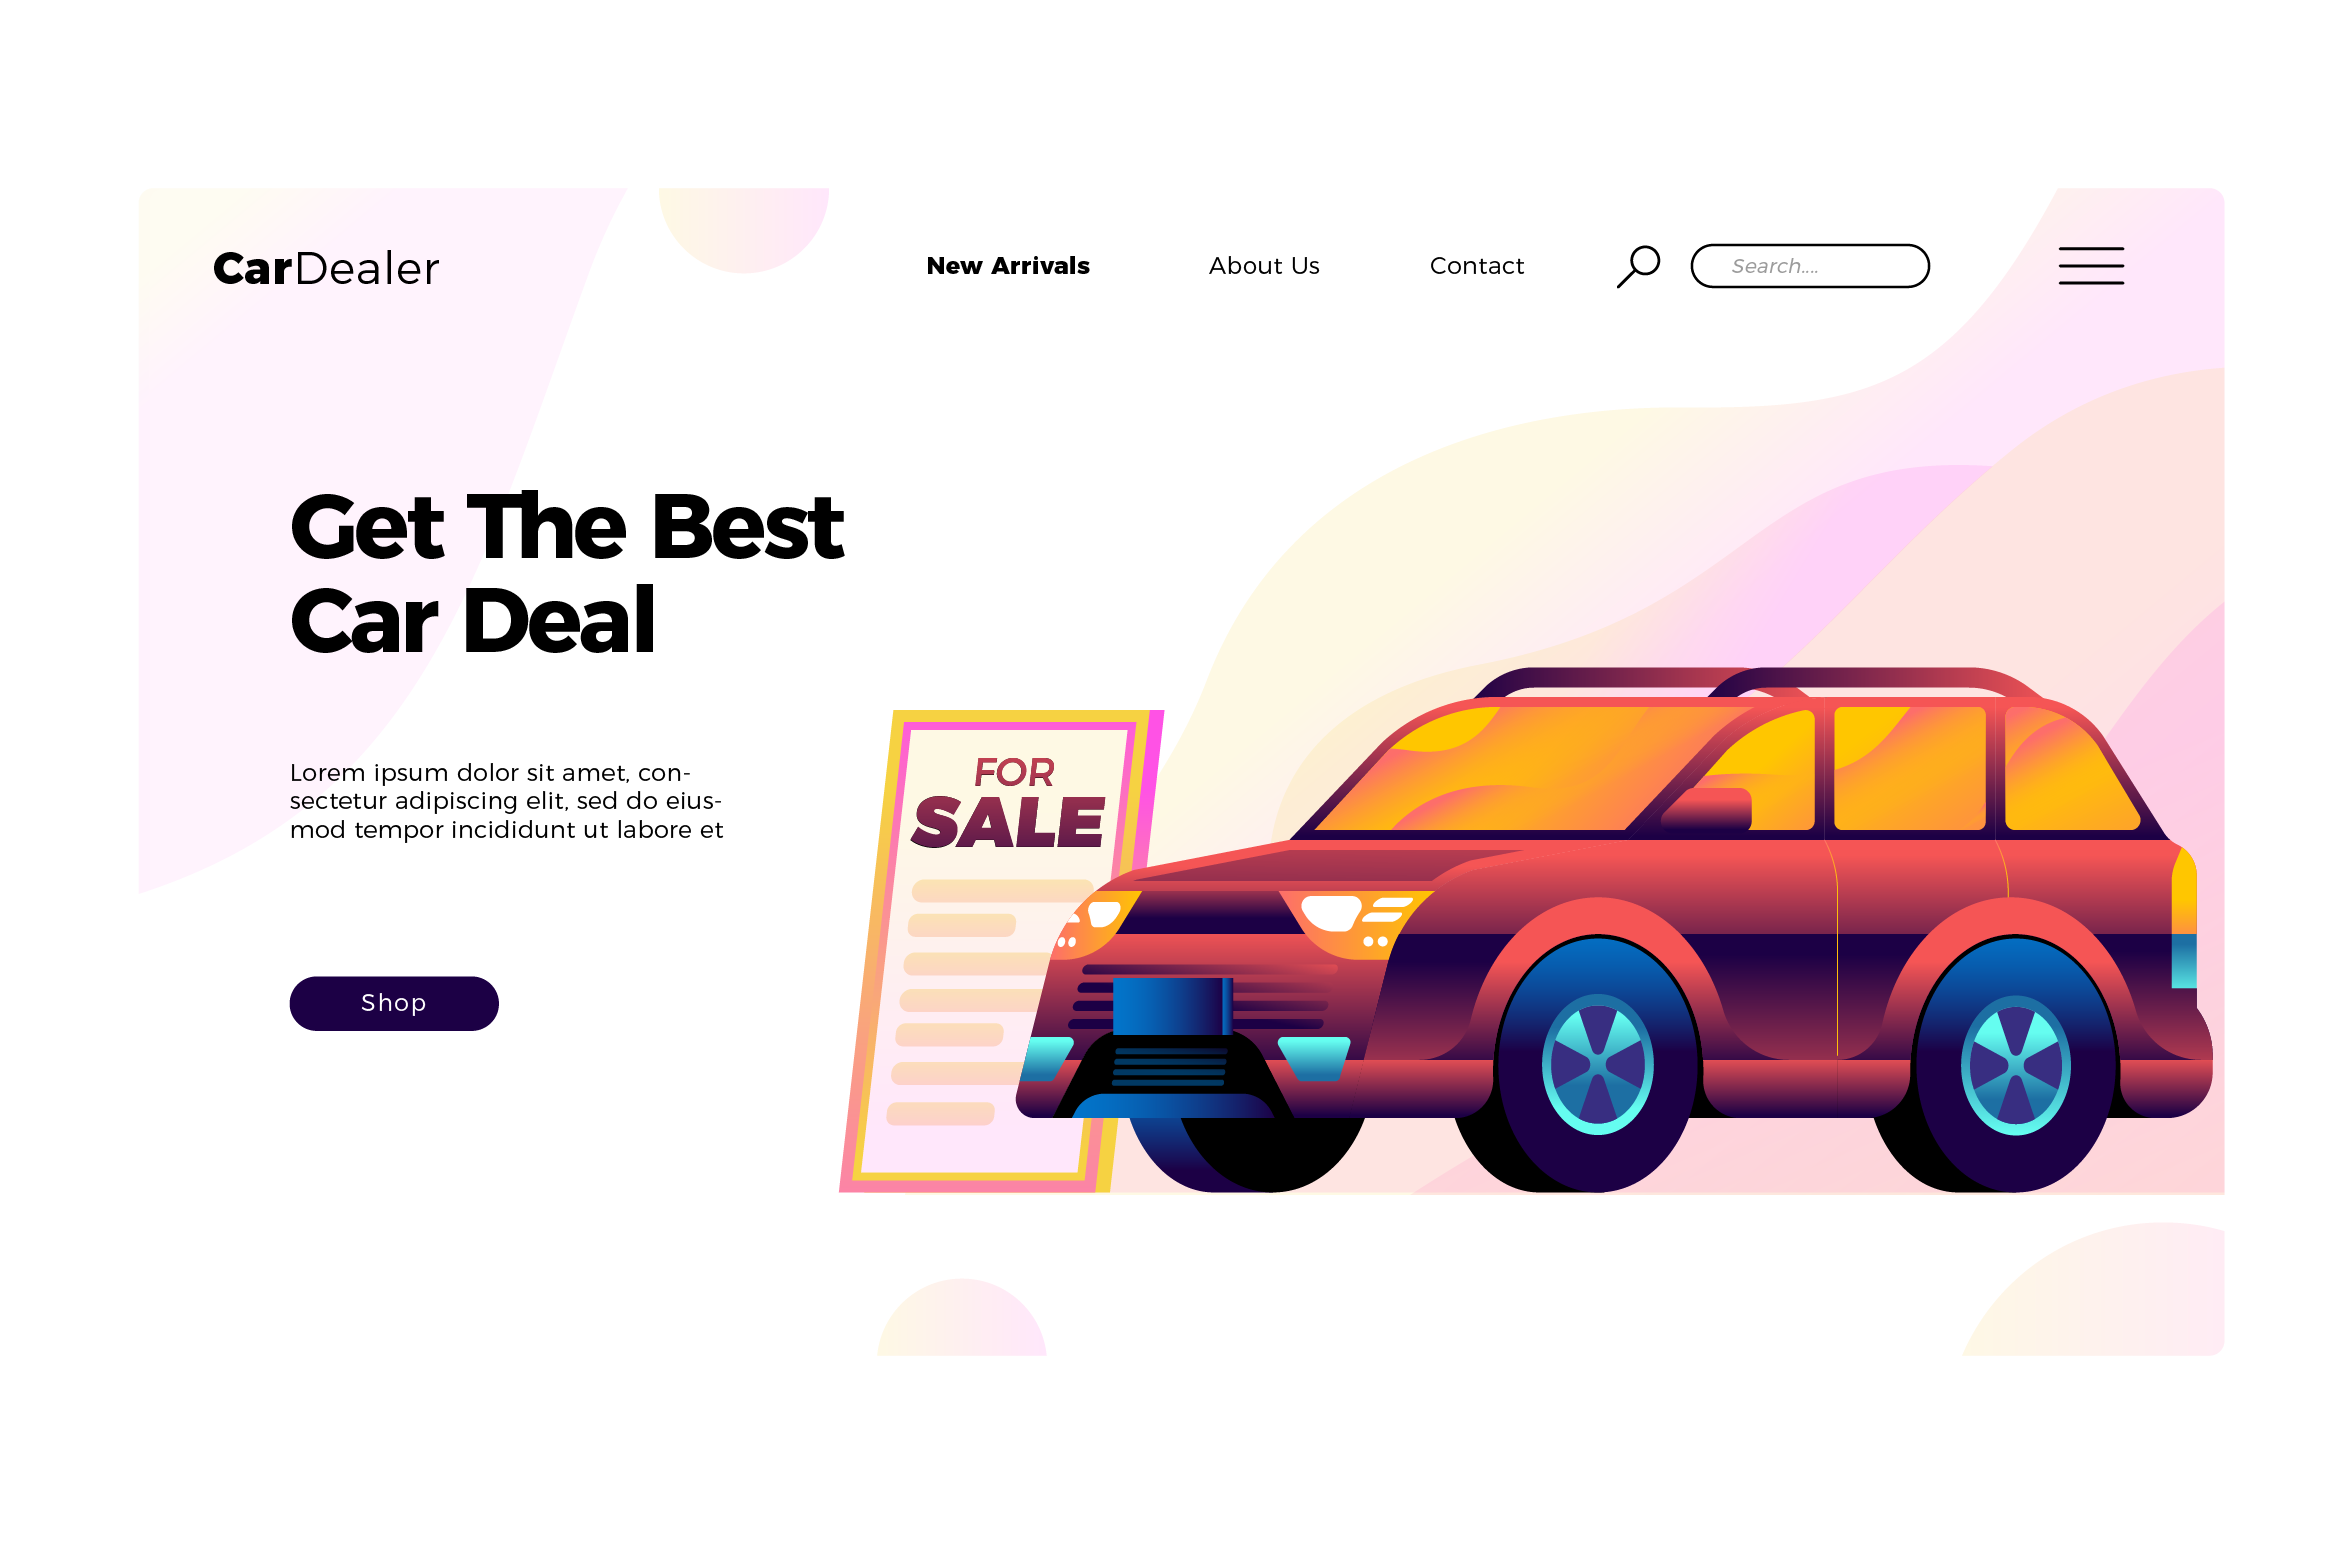 WEB端汽车插画风格登录页 Car Dealership - Banner and Landing Page